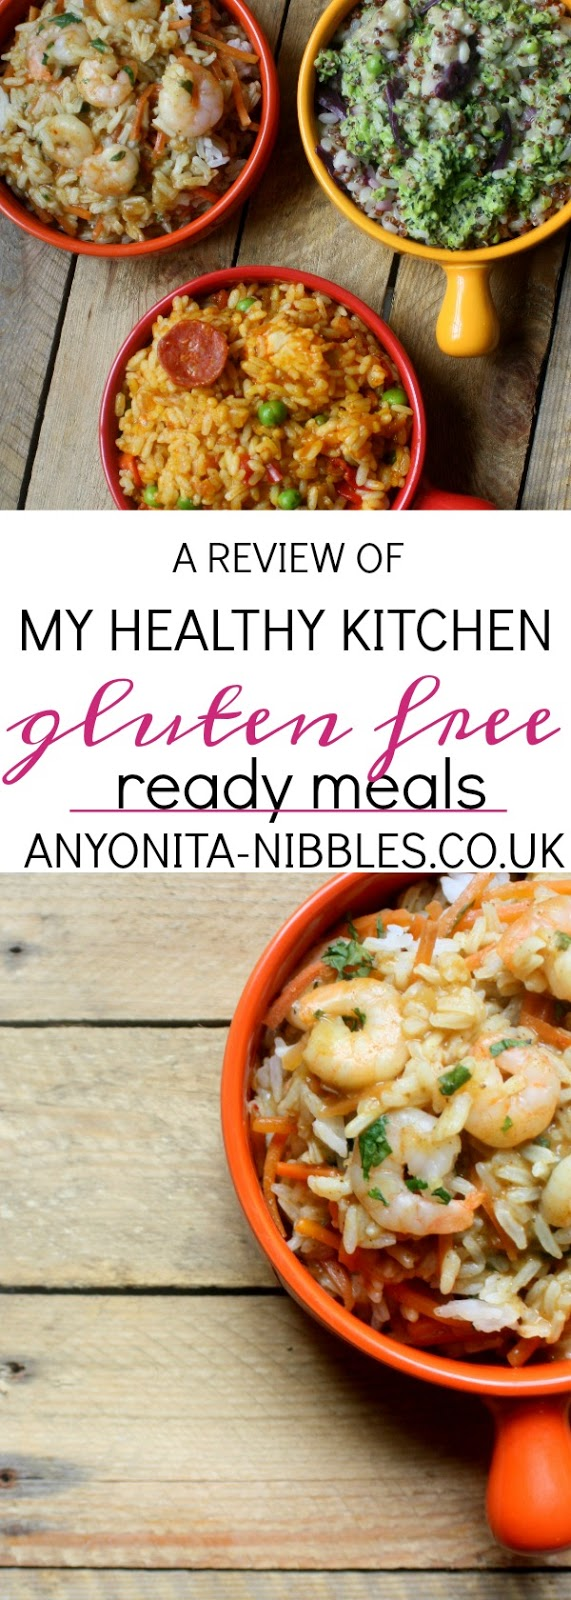 A Reveiw of My Healthy Ktichen Gluten Free Ready Meals